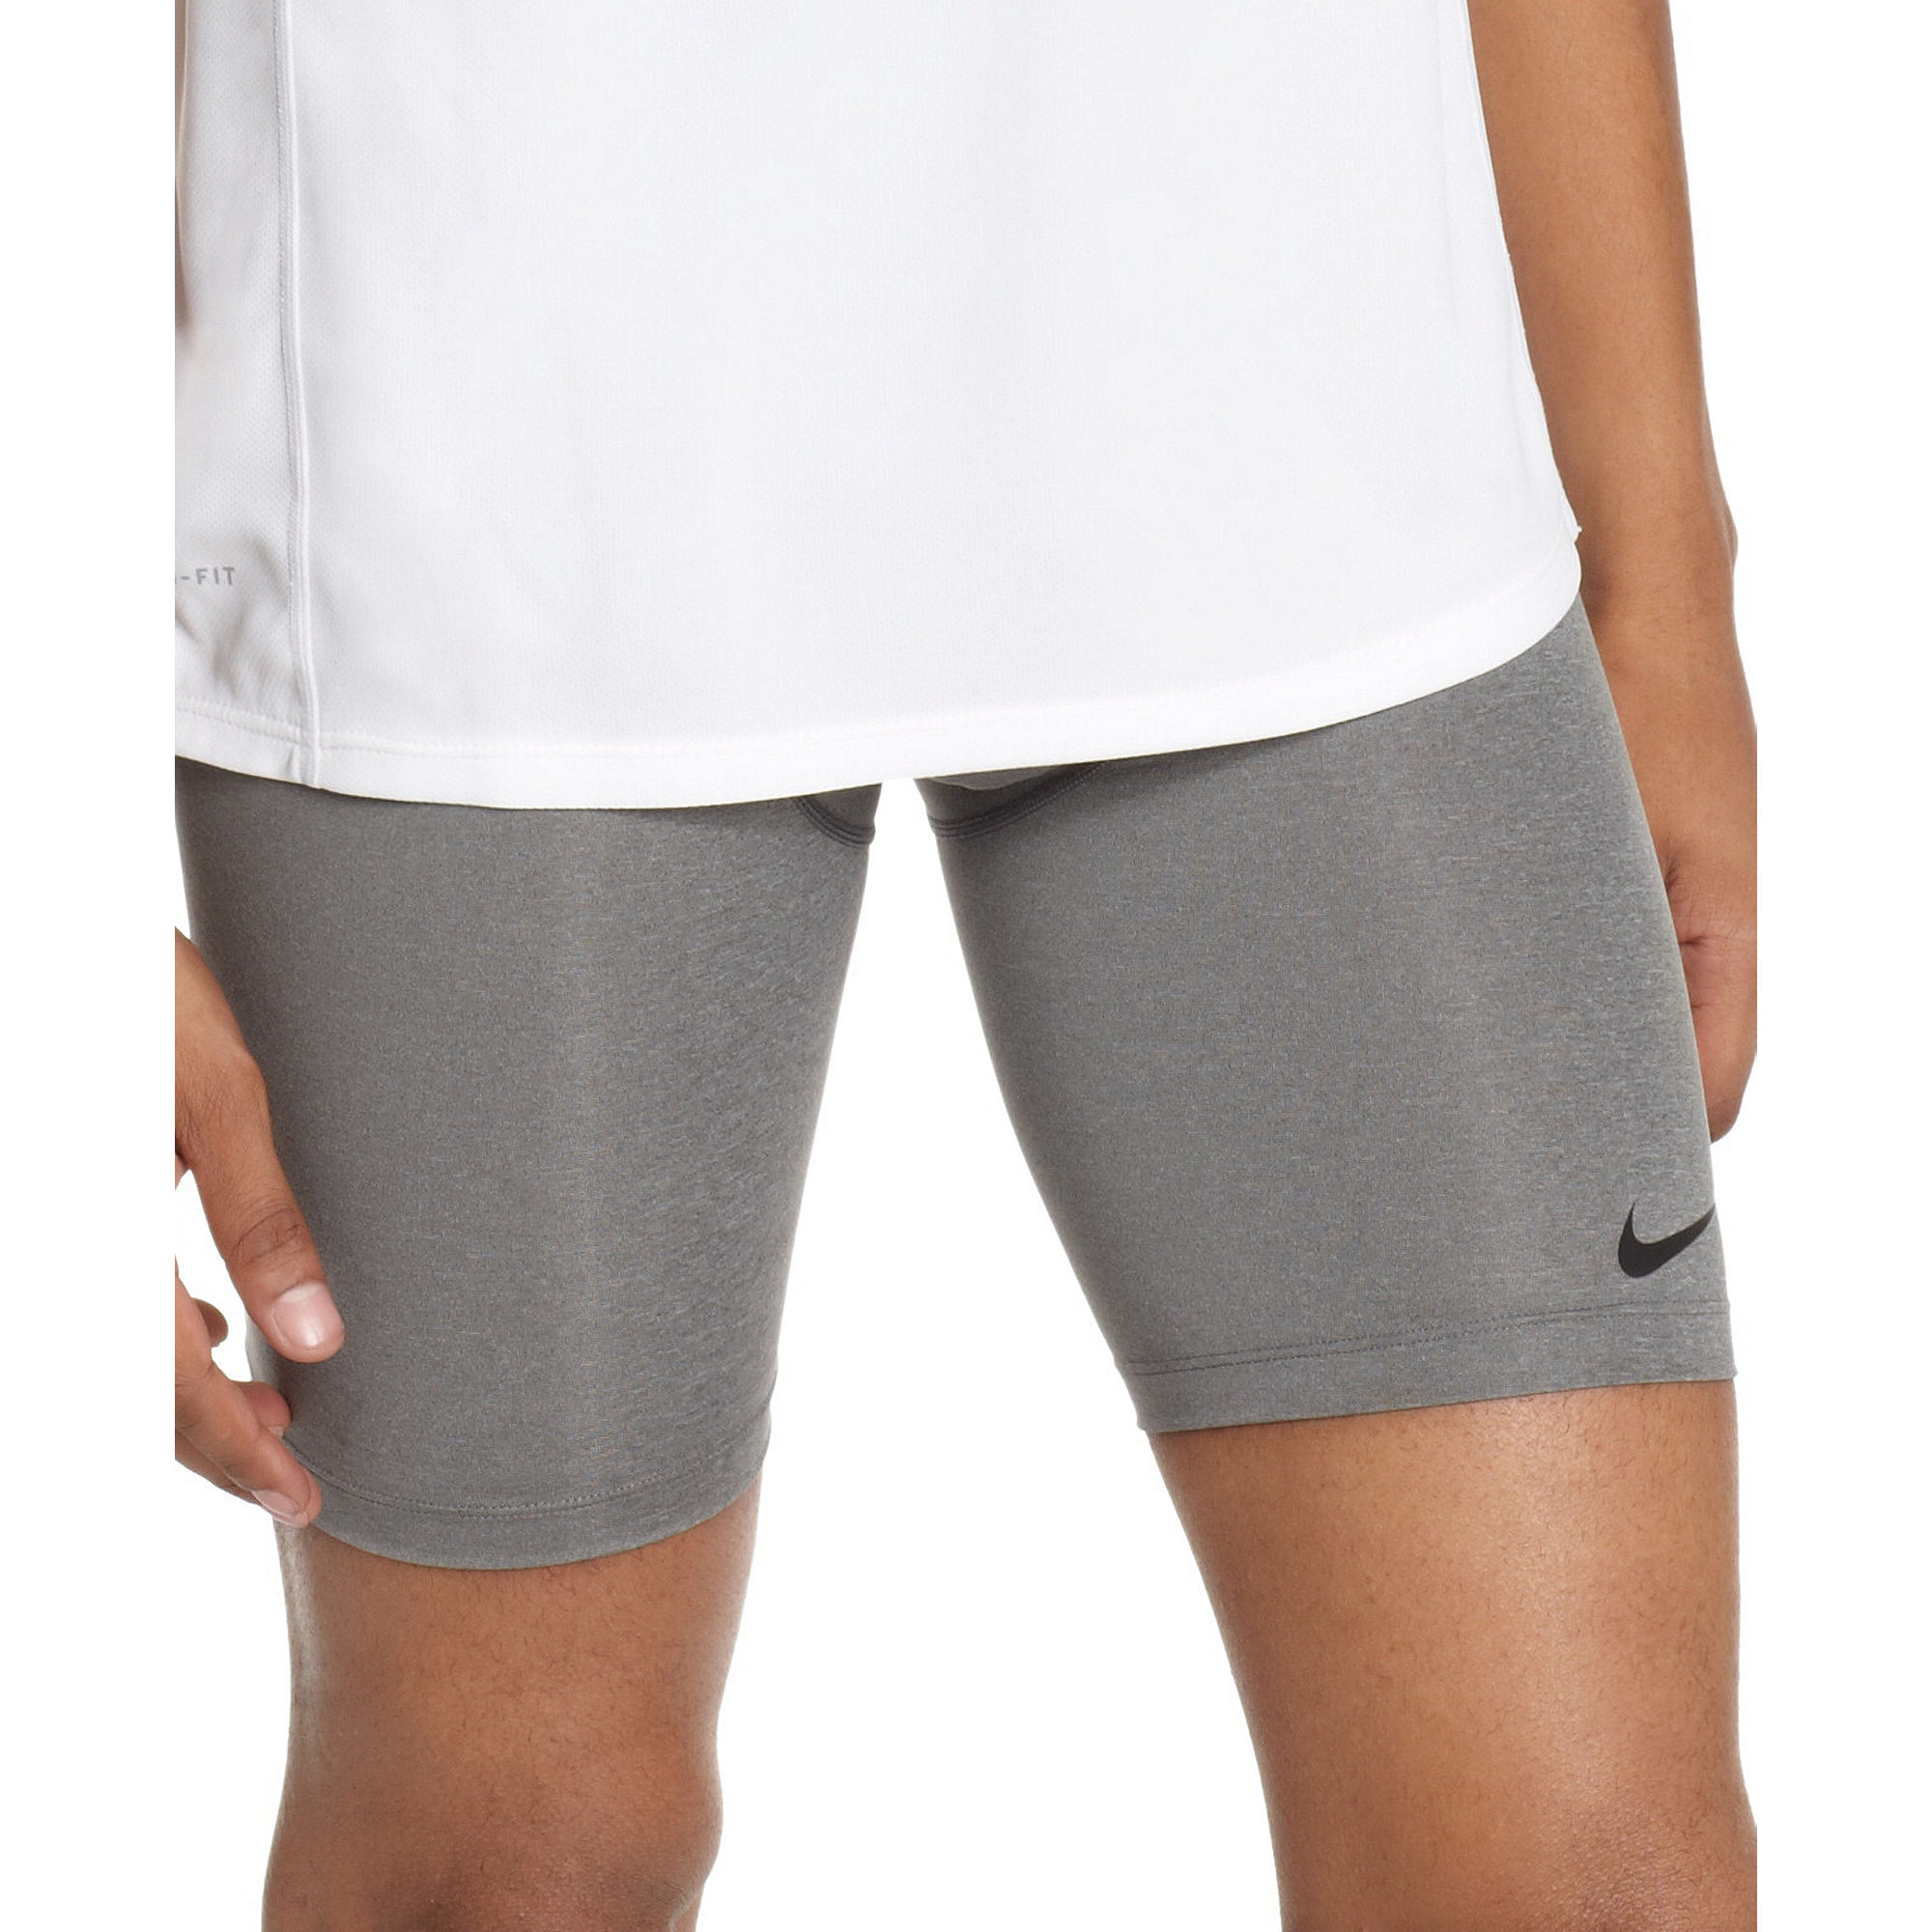 Combine men's compression shorts, tights and tops with a pair of men's shoes for a flexible combination that will help put you in a position to attack your training. Shop compression shorts, tights and tops for women, boys and girls, and be sure to explore the complete collection of men's clothing for additional style, design and color.